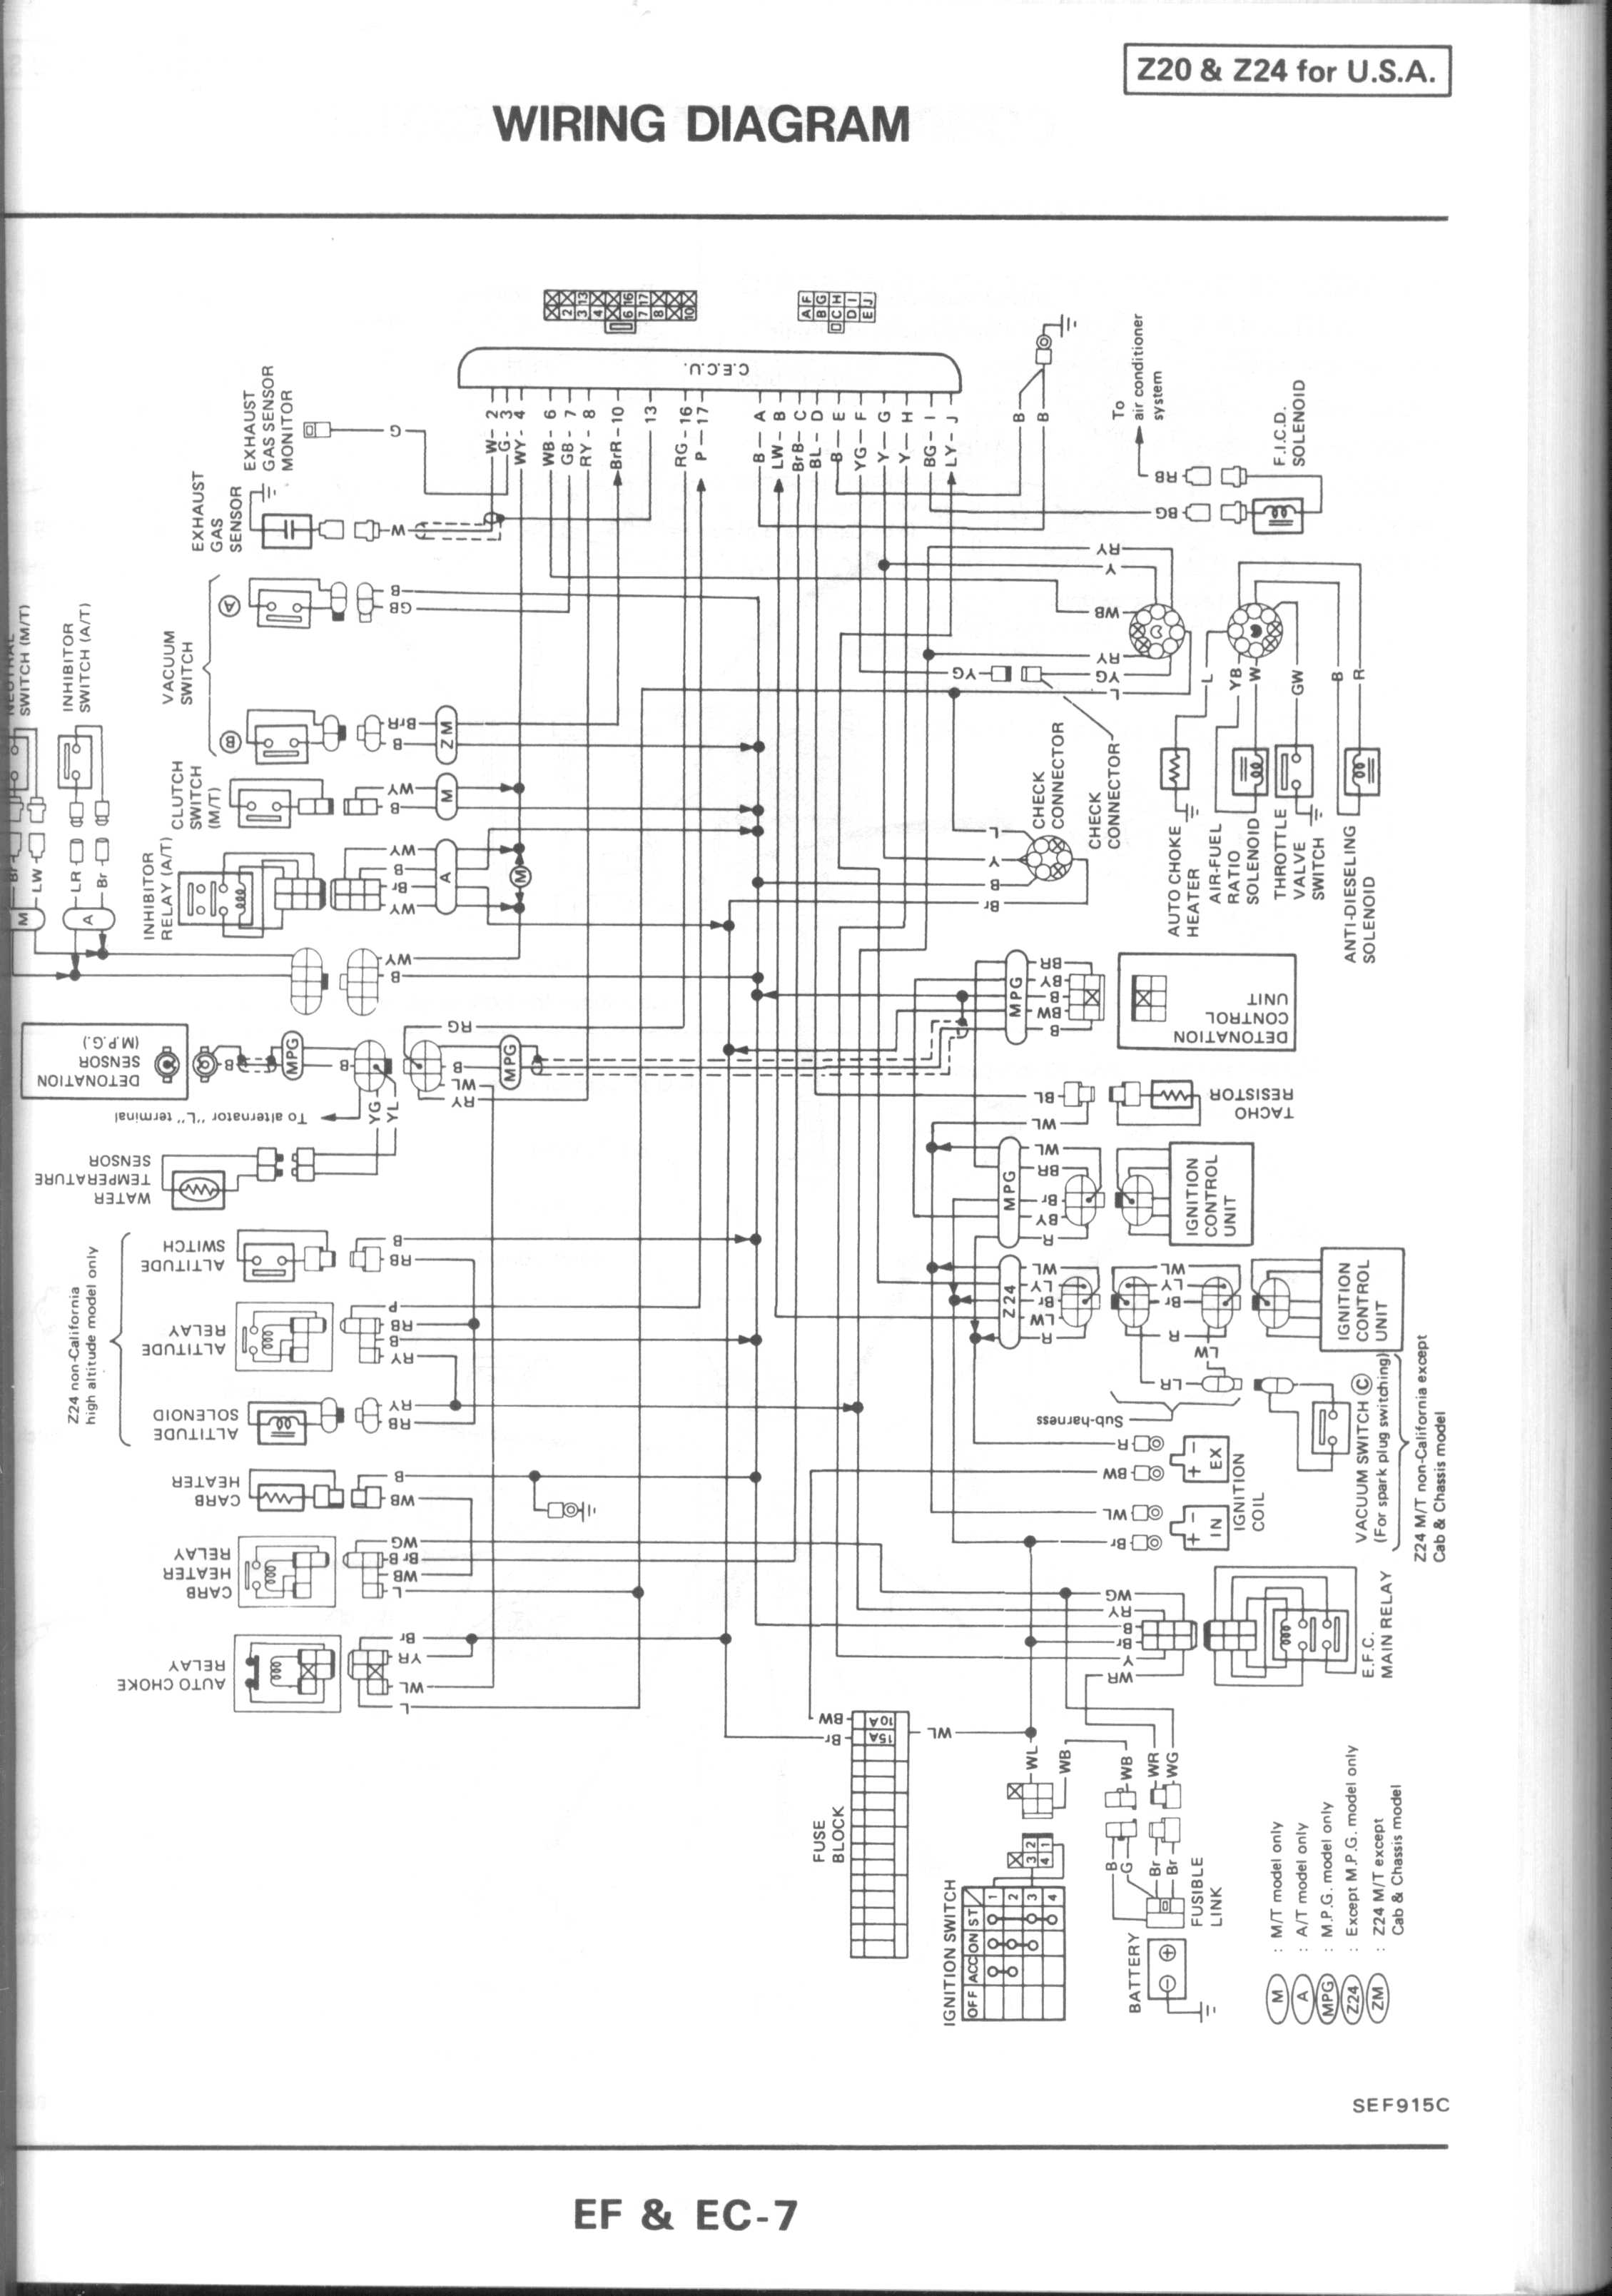 86 nissan 720 wiring diagram egr control....(kinda' long) - nissan forum | nissan forums